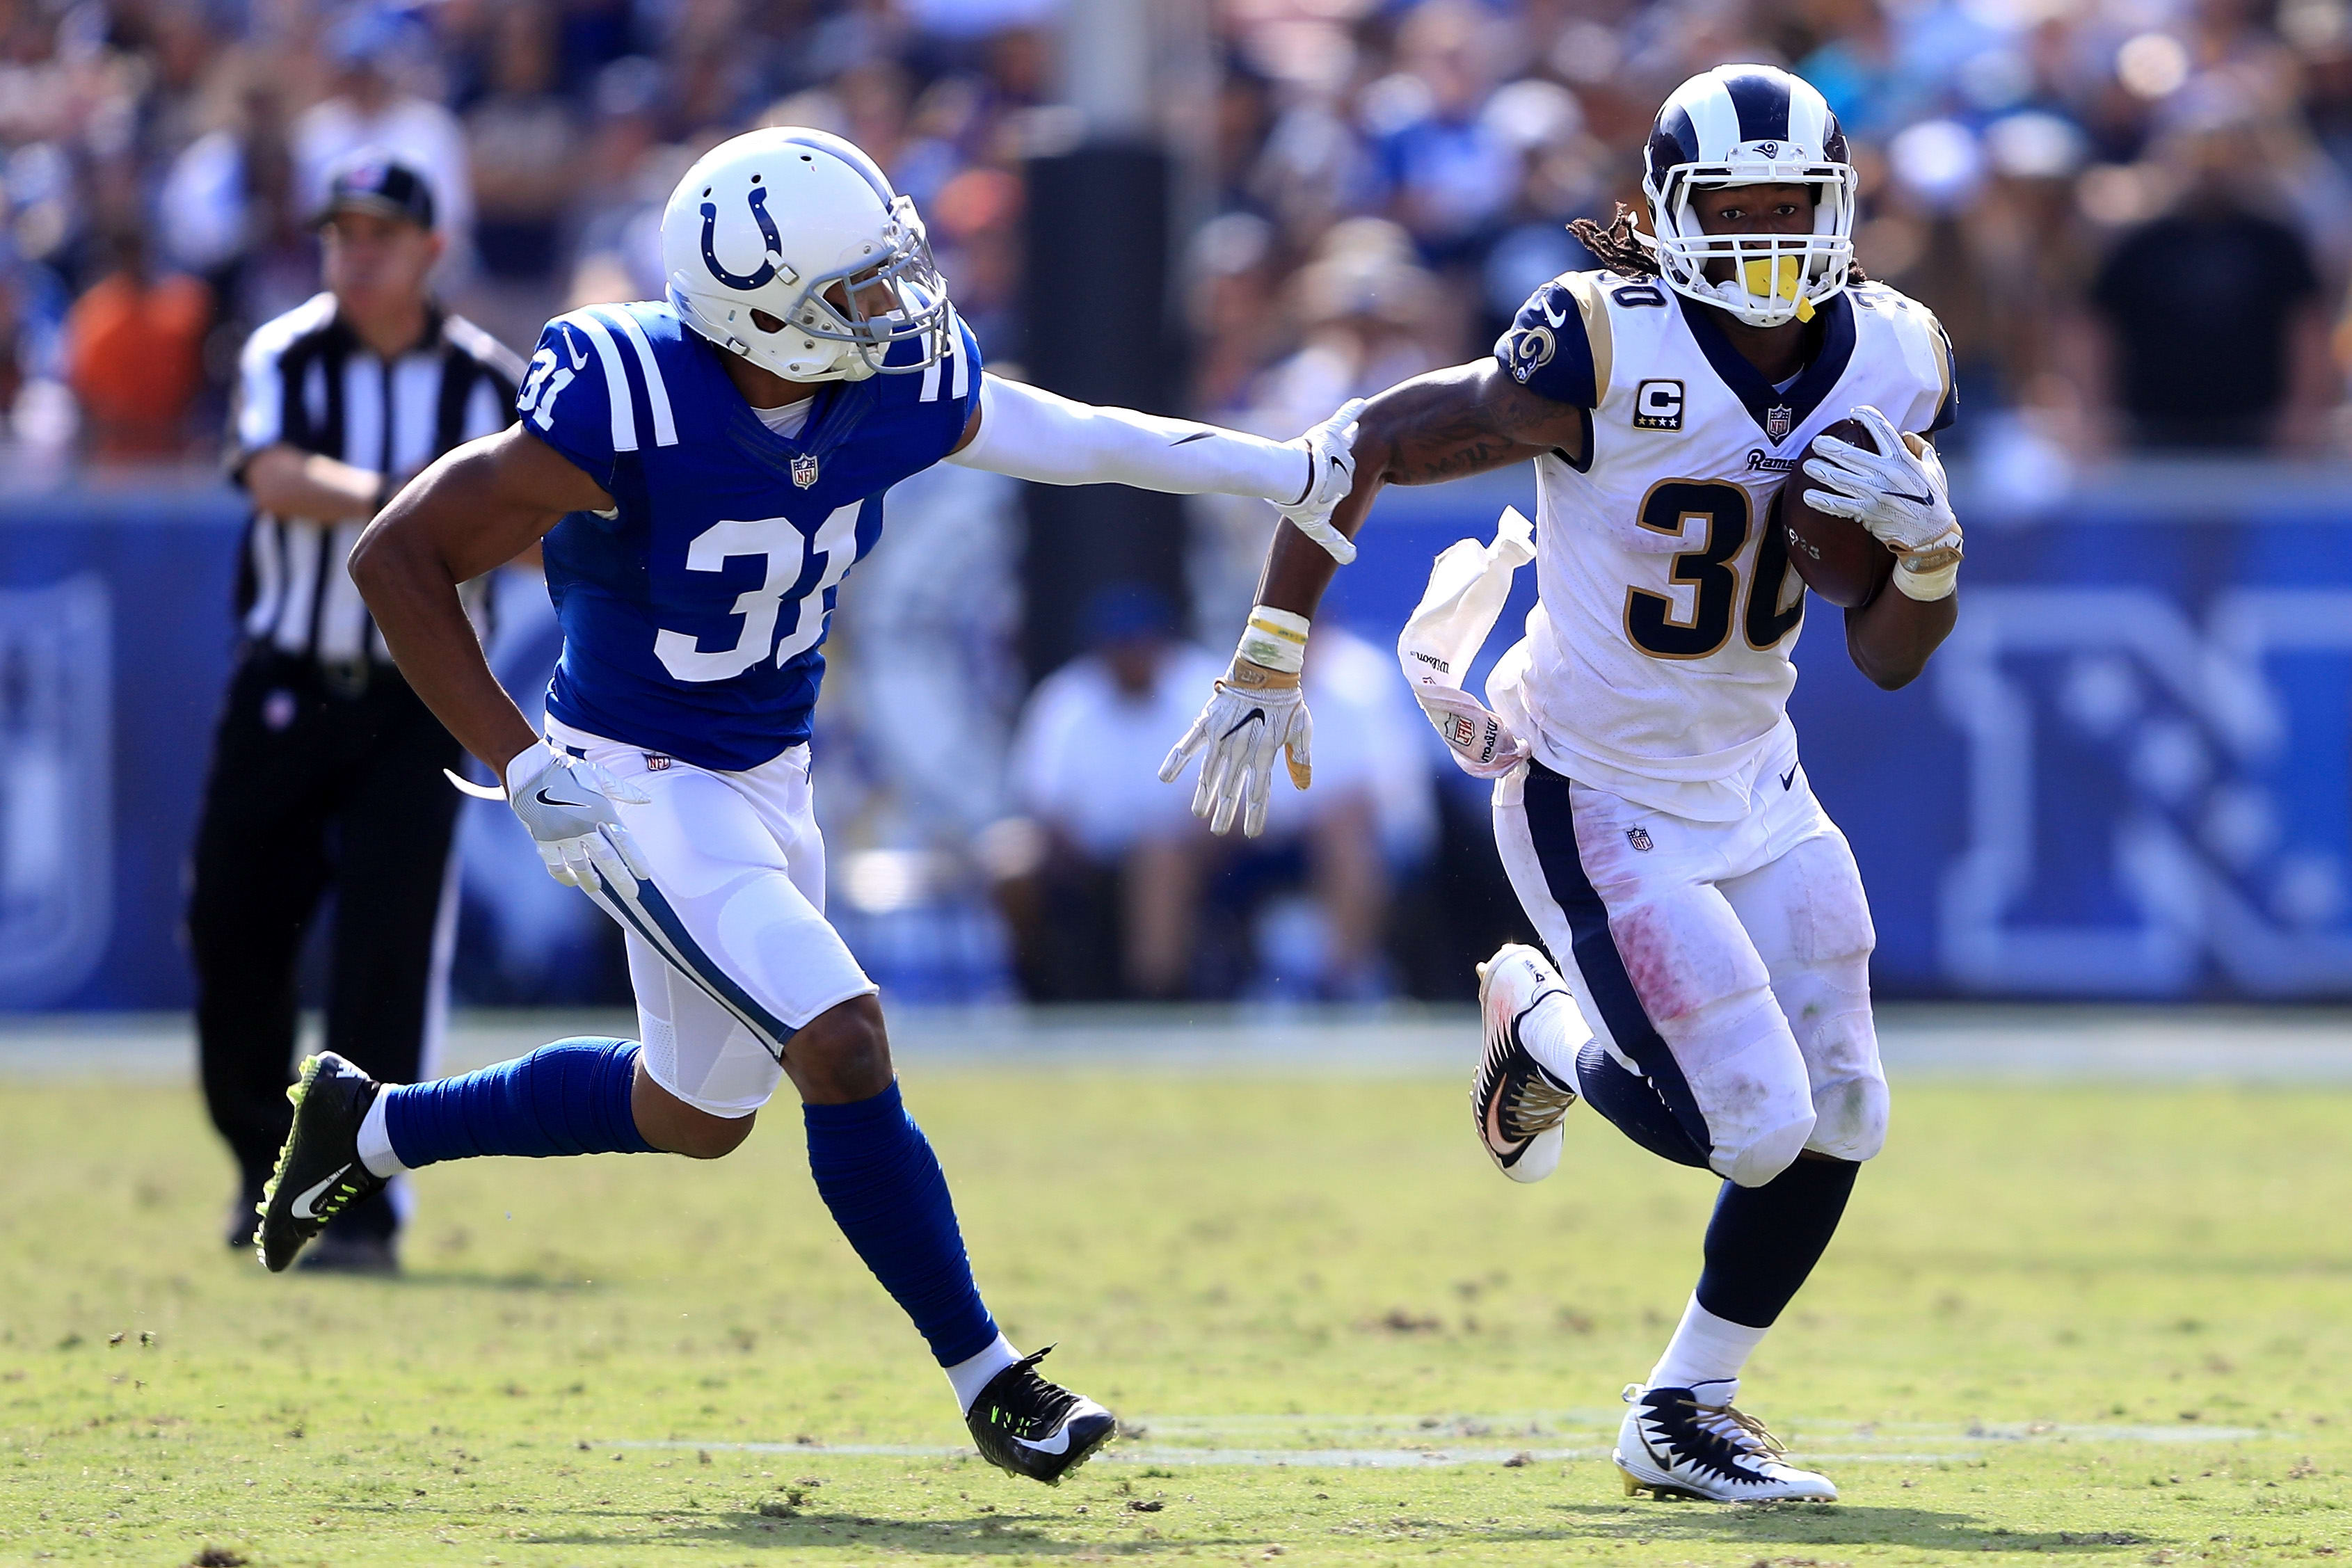 Los Angeles Rams: Three takeaways from home opener vs Colts